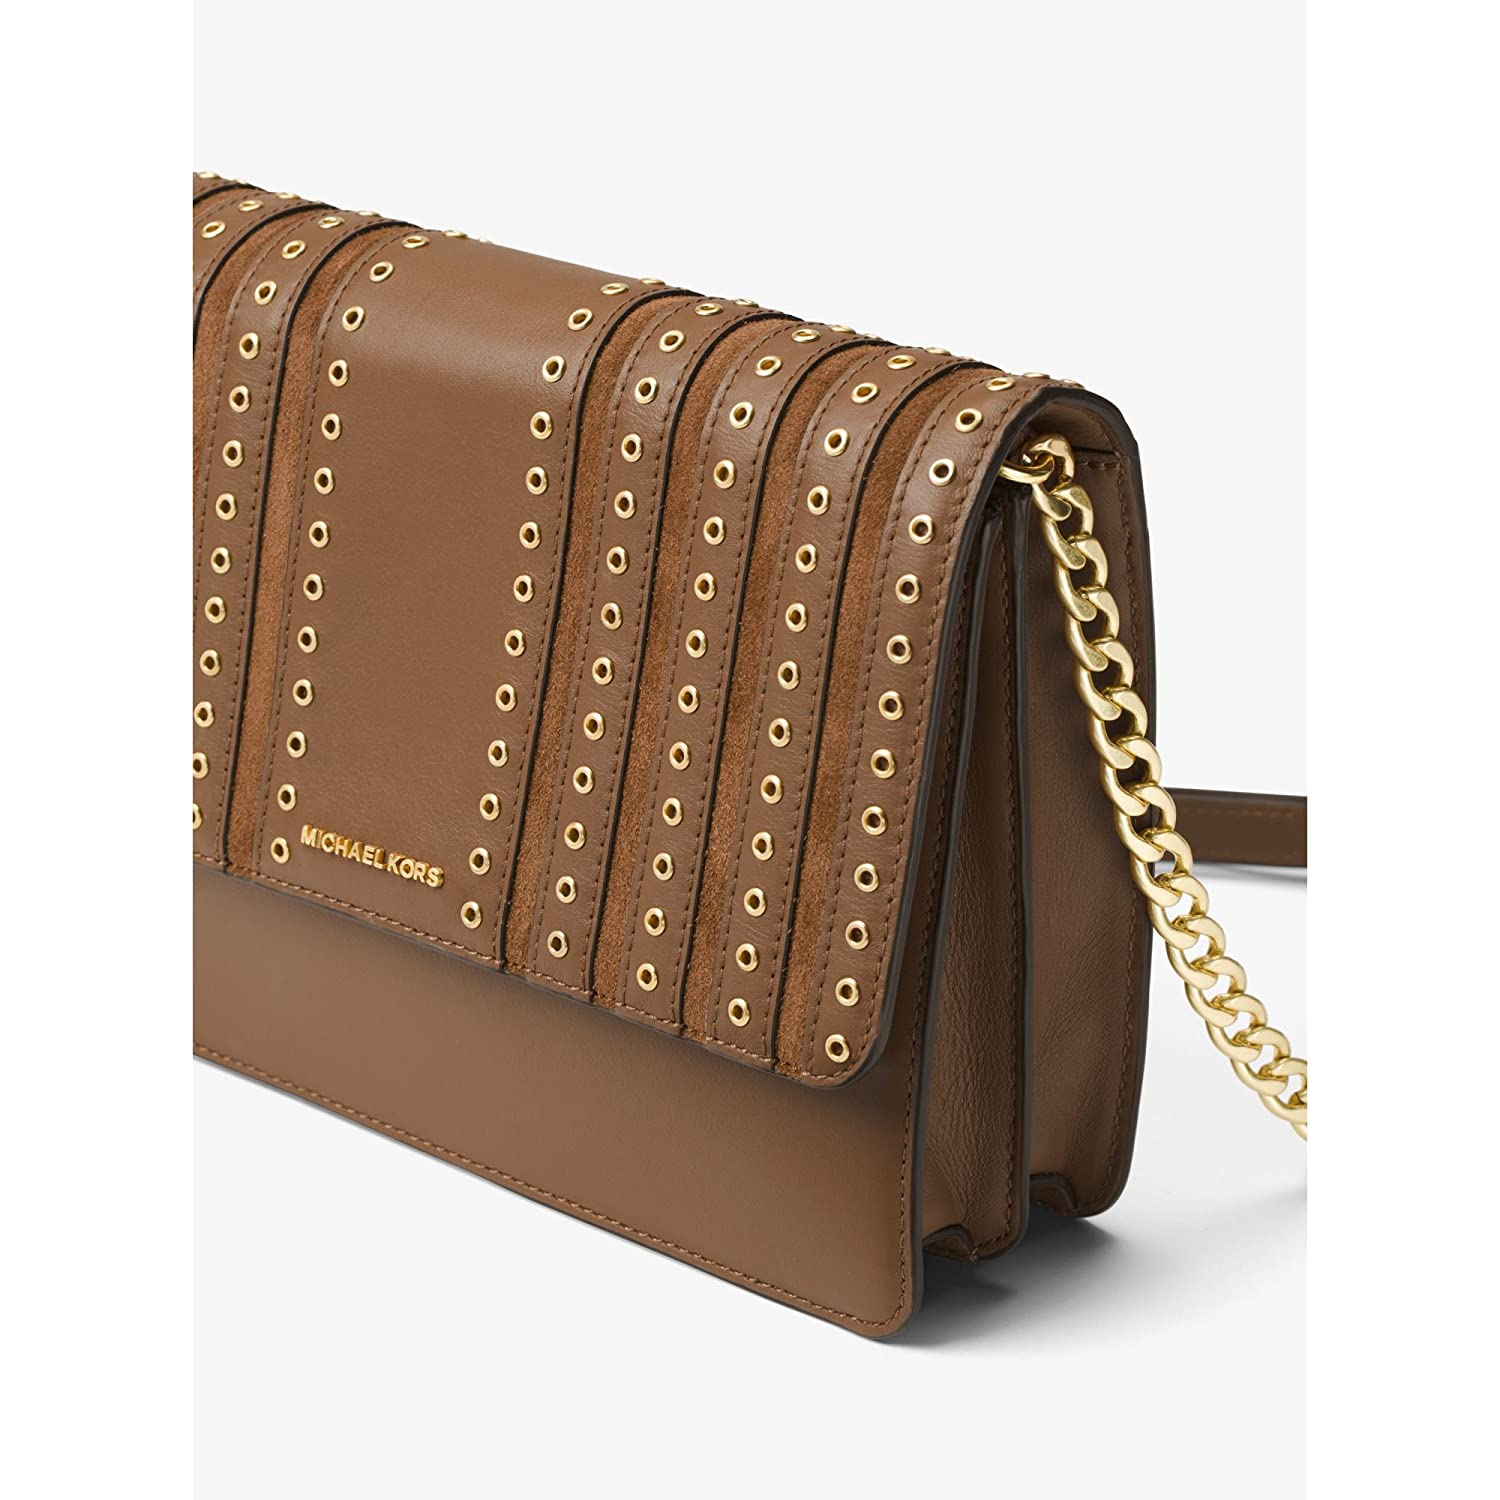 a52d3bd3b317ed Michael Kors Brooklyn Large Grommet Suede and Leather Crossbody in Caramel:  Handbags: Amazon.com